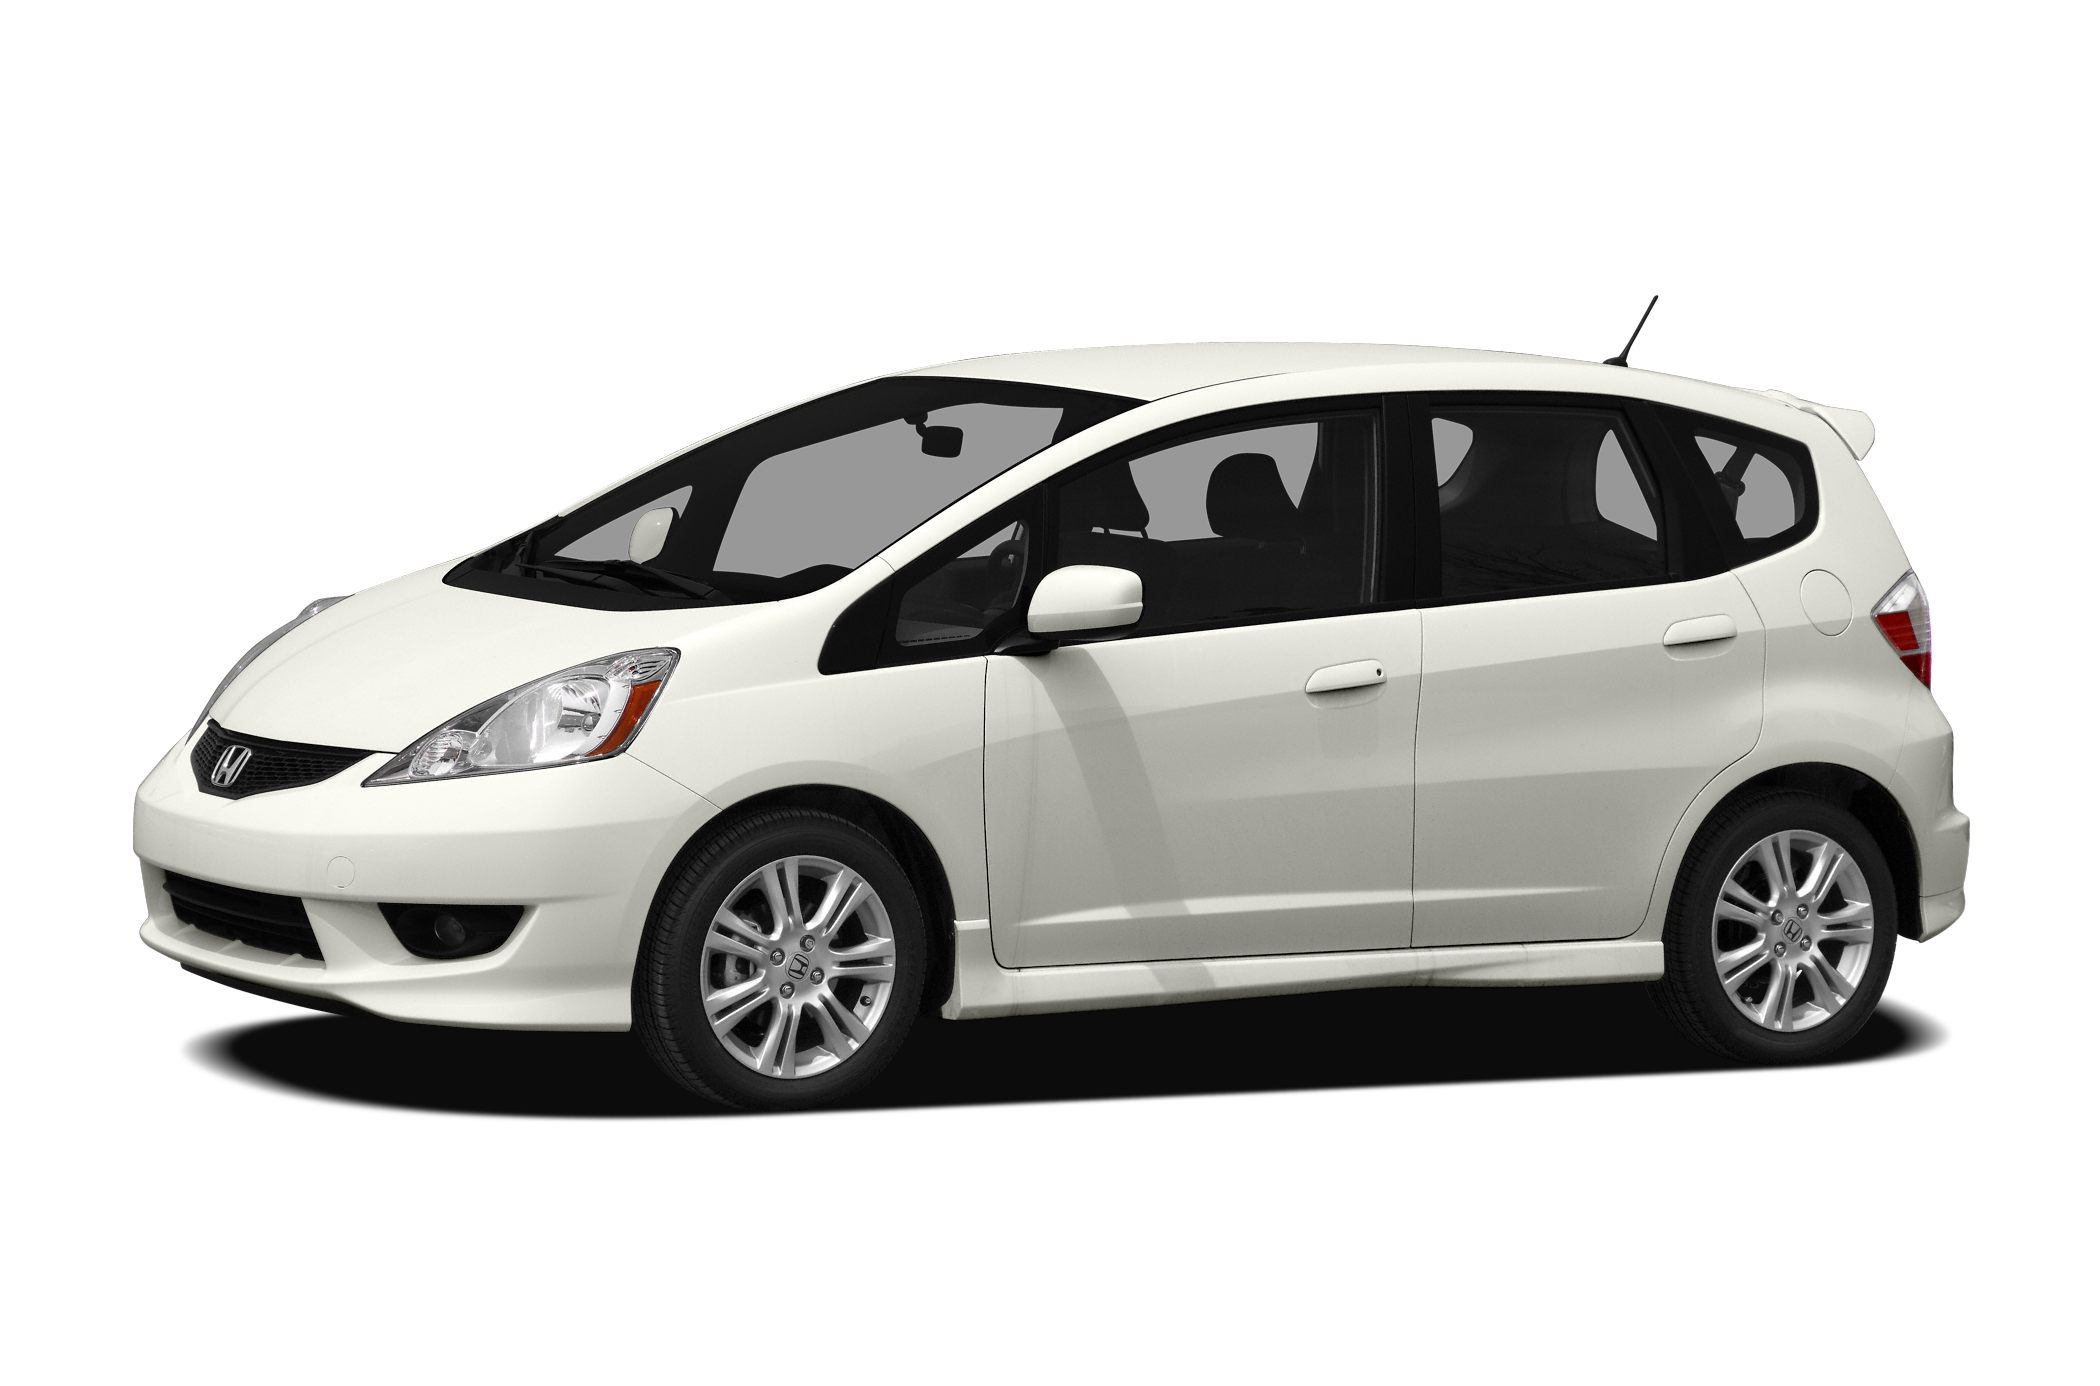 2010 Honda Fit Sport Hatchback for sale in Bend for $15,990 with 38,671 miles.